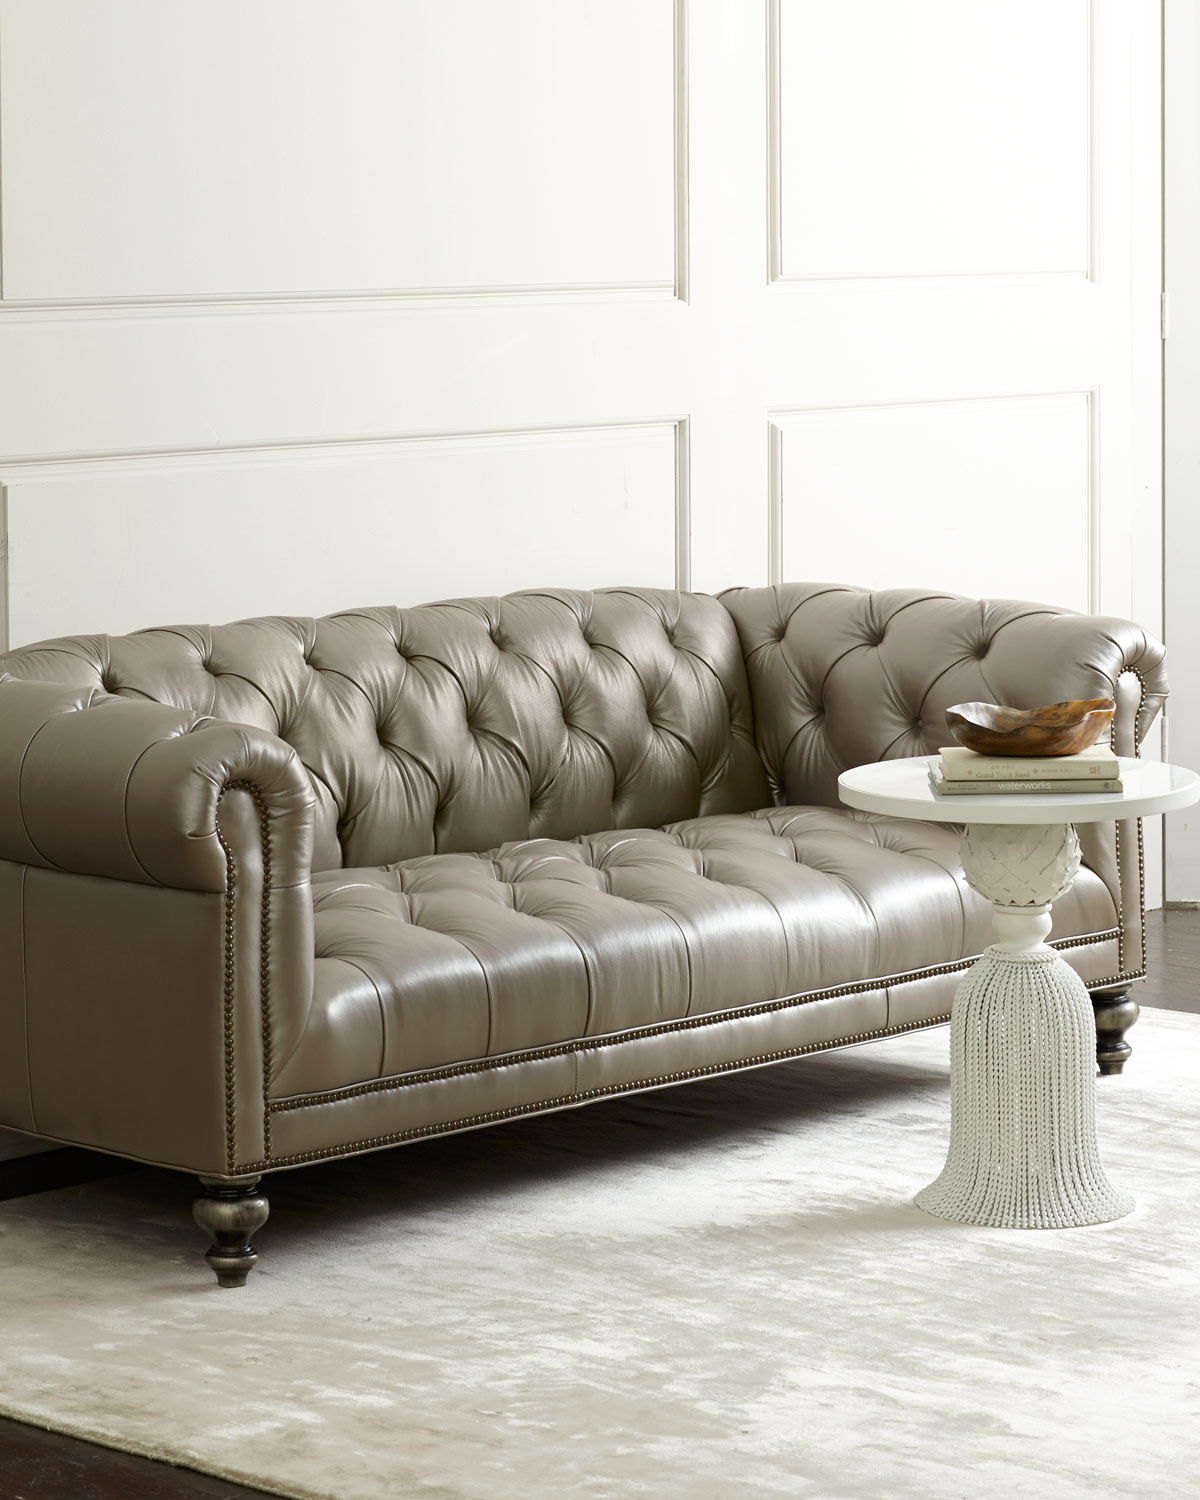 Old Hickory Tannery Morgan Gray Chesterfield Leather Sofa Neiman